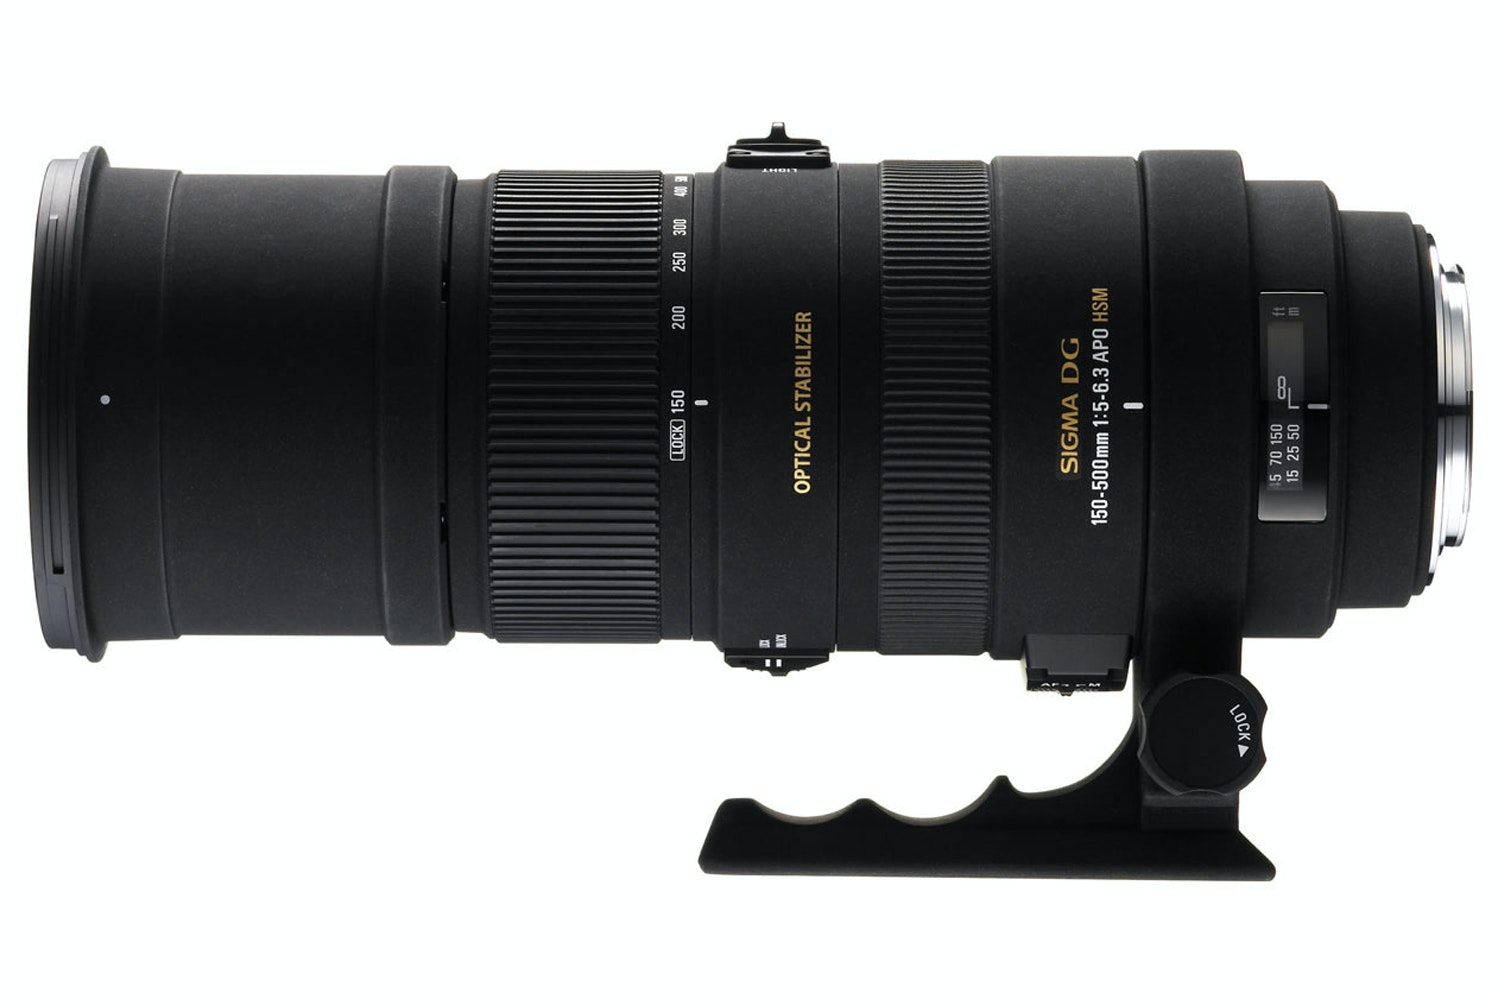 Sigma 150-500mm DG OS HSM lens for Canon